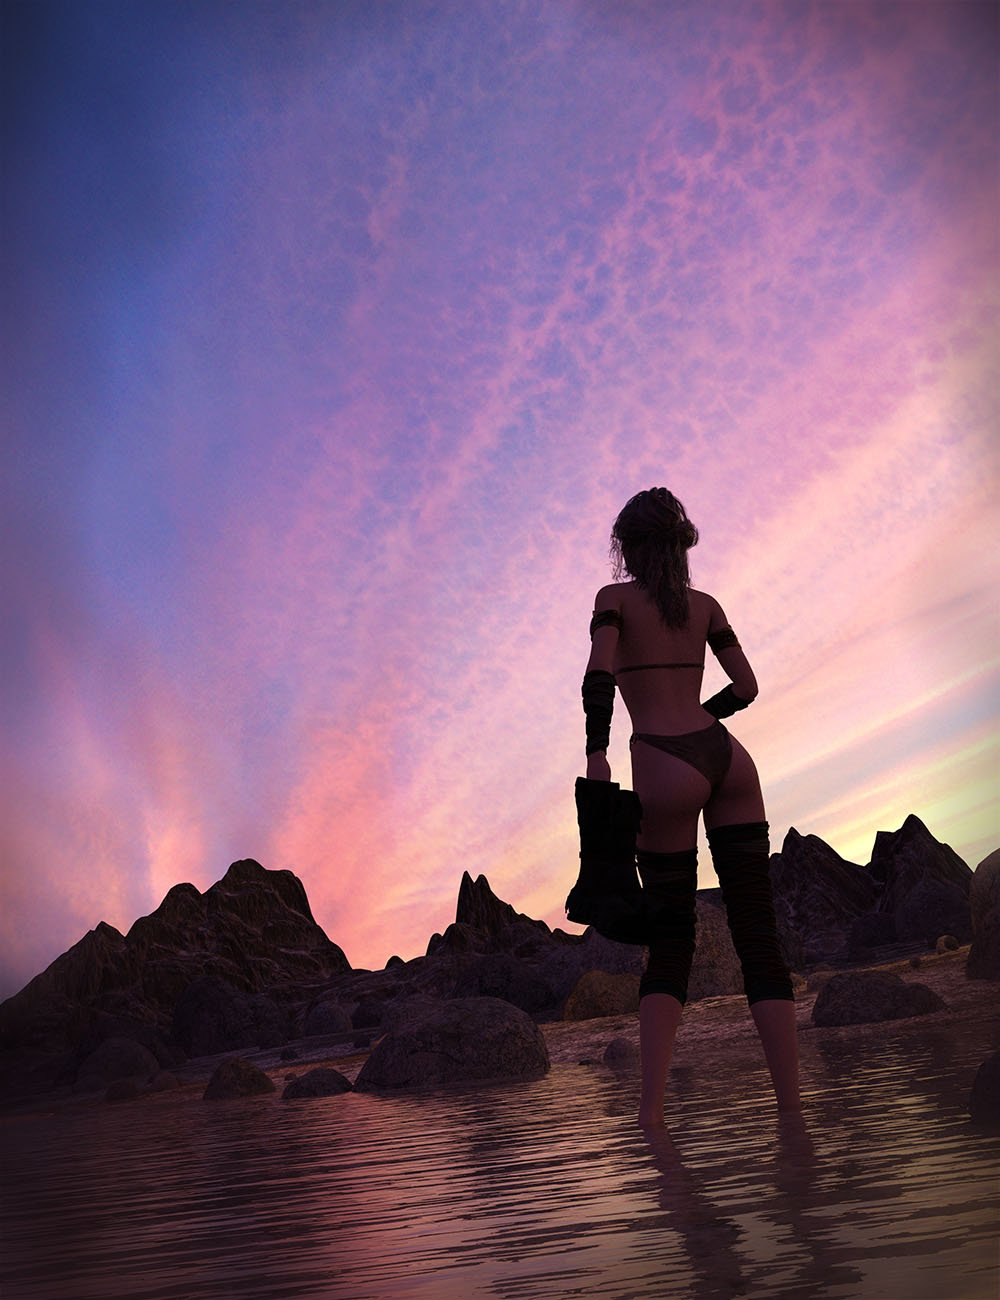 Orestes Iray HDRI Skydomes Vol 4 - Sunset by: Orestes Graphics, 3D Models by Daz 3D